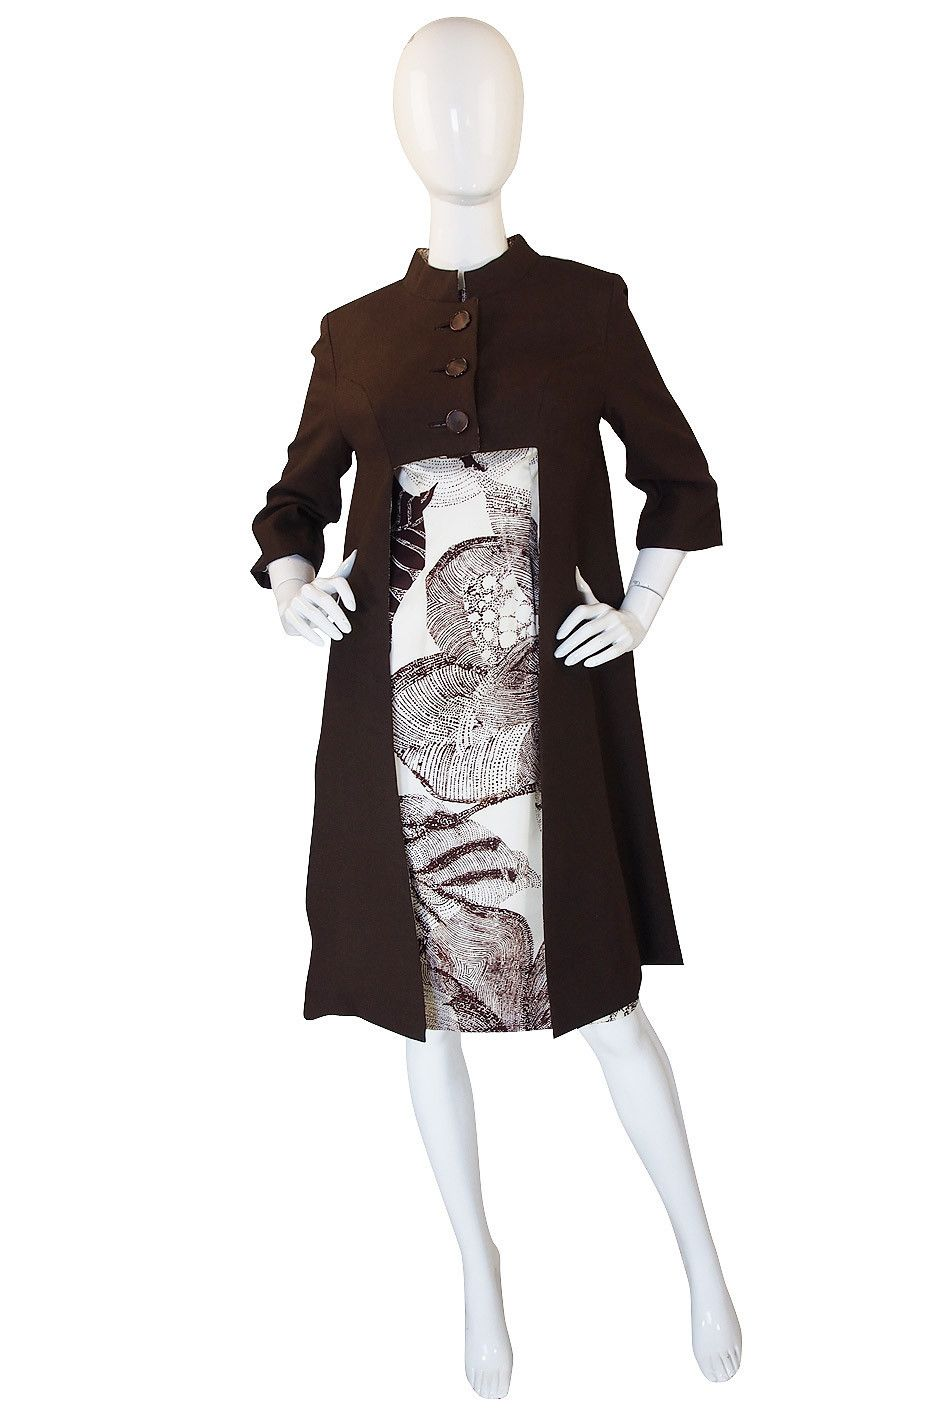 1960s Rayon Print Dress & Unusual Jacket